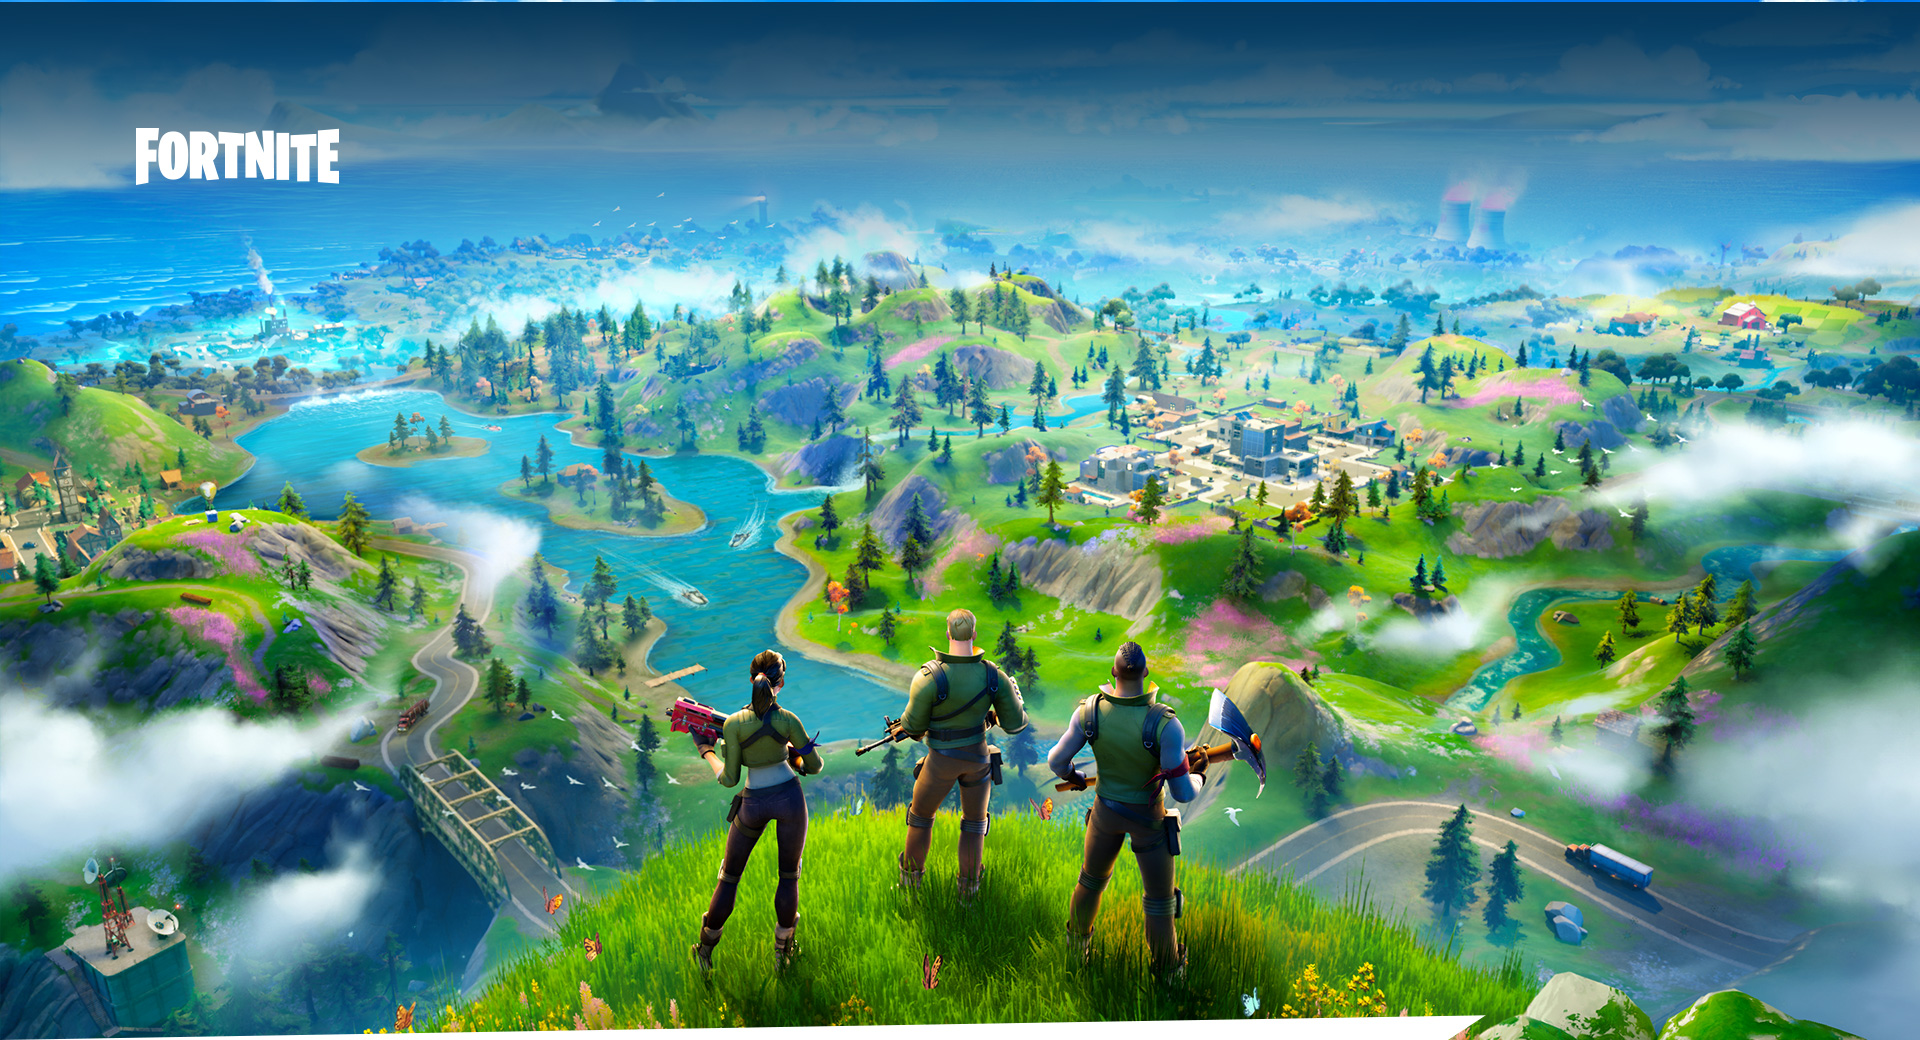 Fortnite, Three characters stand on top of a hill overlooking a lush map, bright ocean water surrounds the island